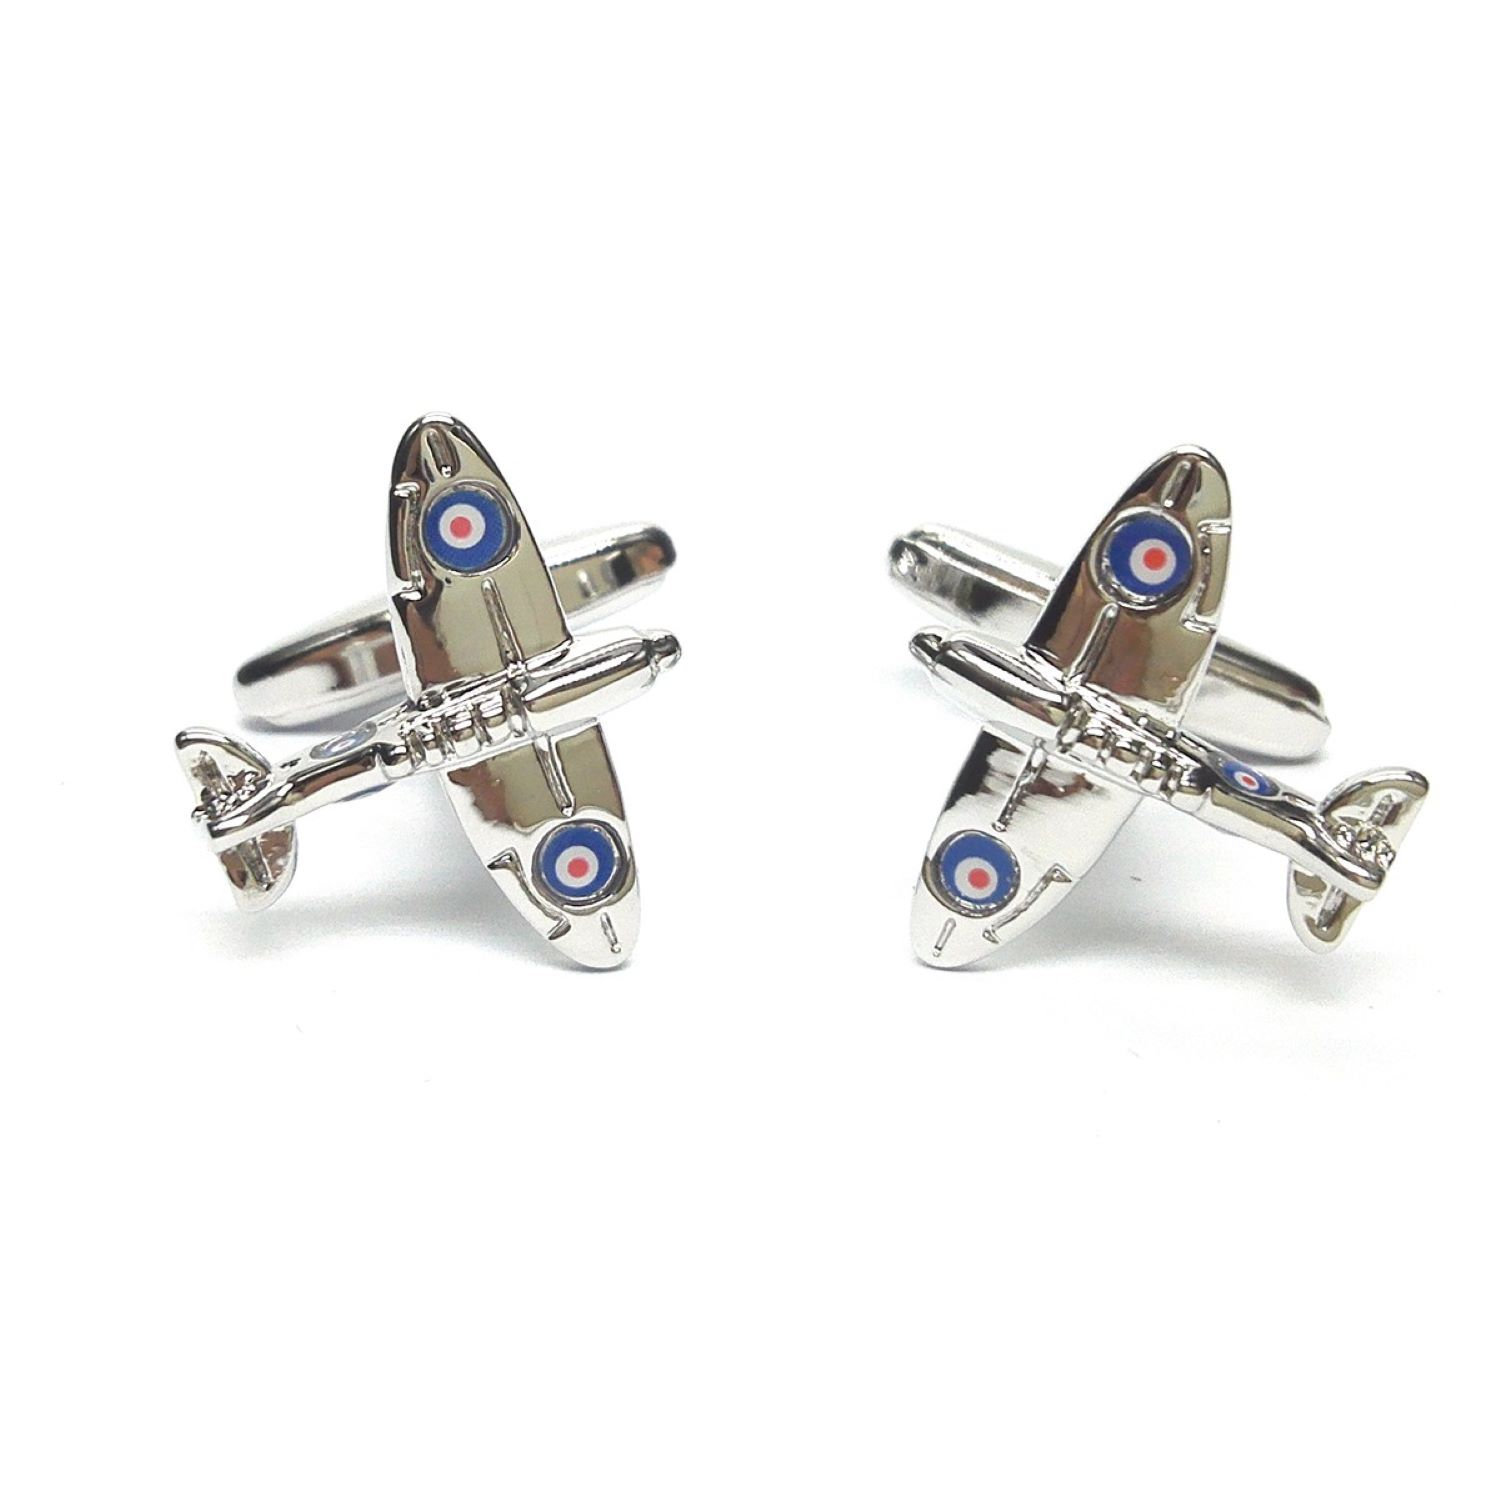 silver spitfire mk11 Cufflinks design Cufflinks in gift box cuff links